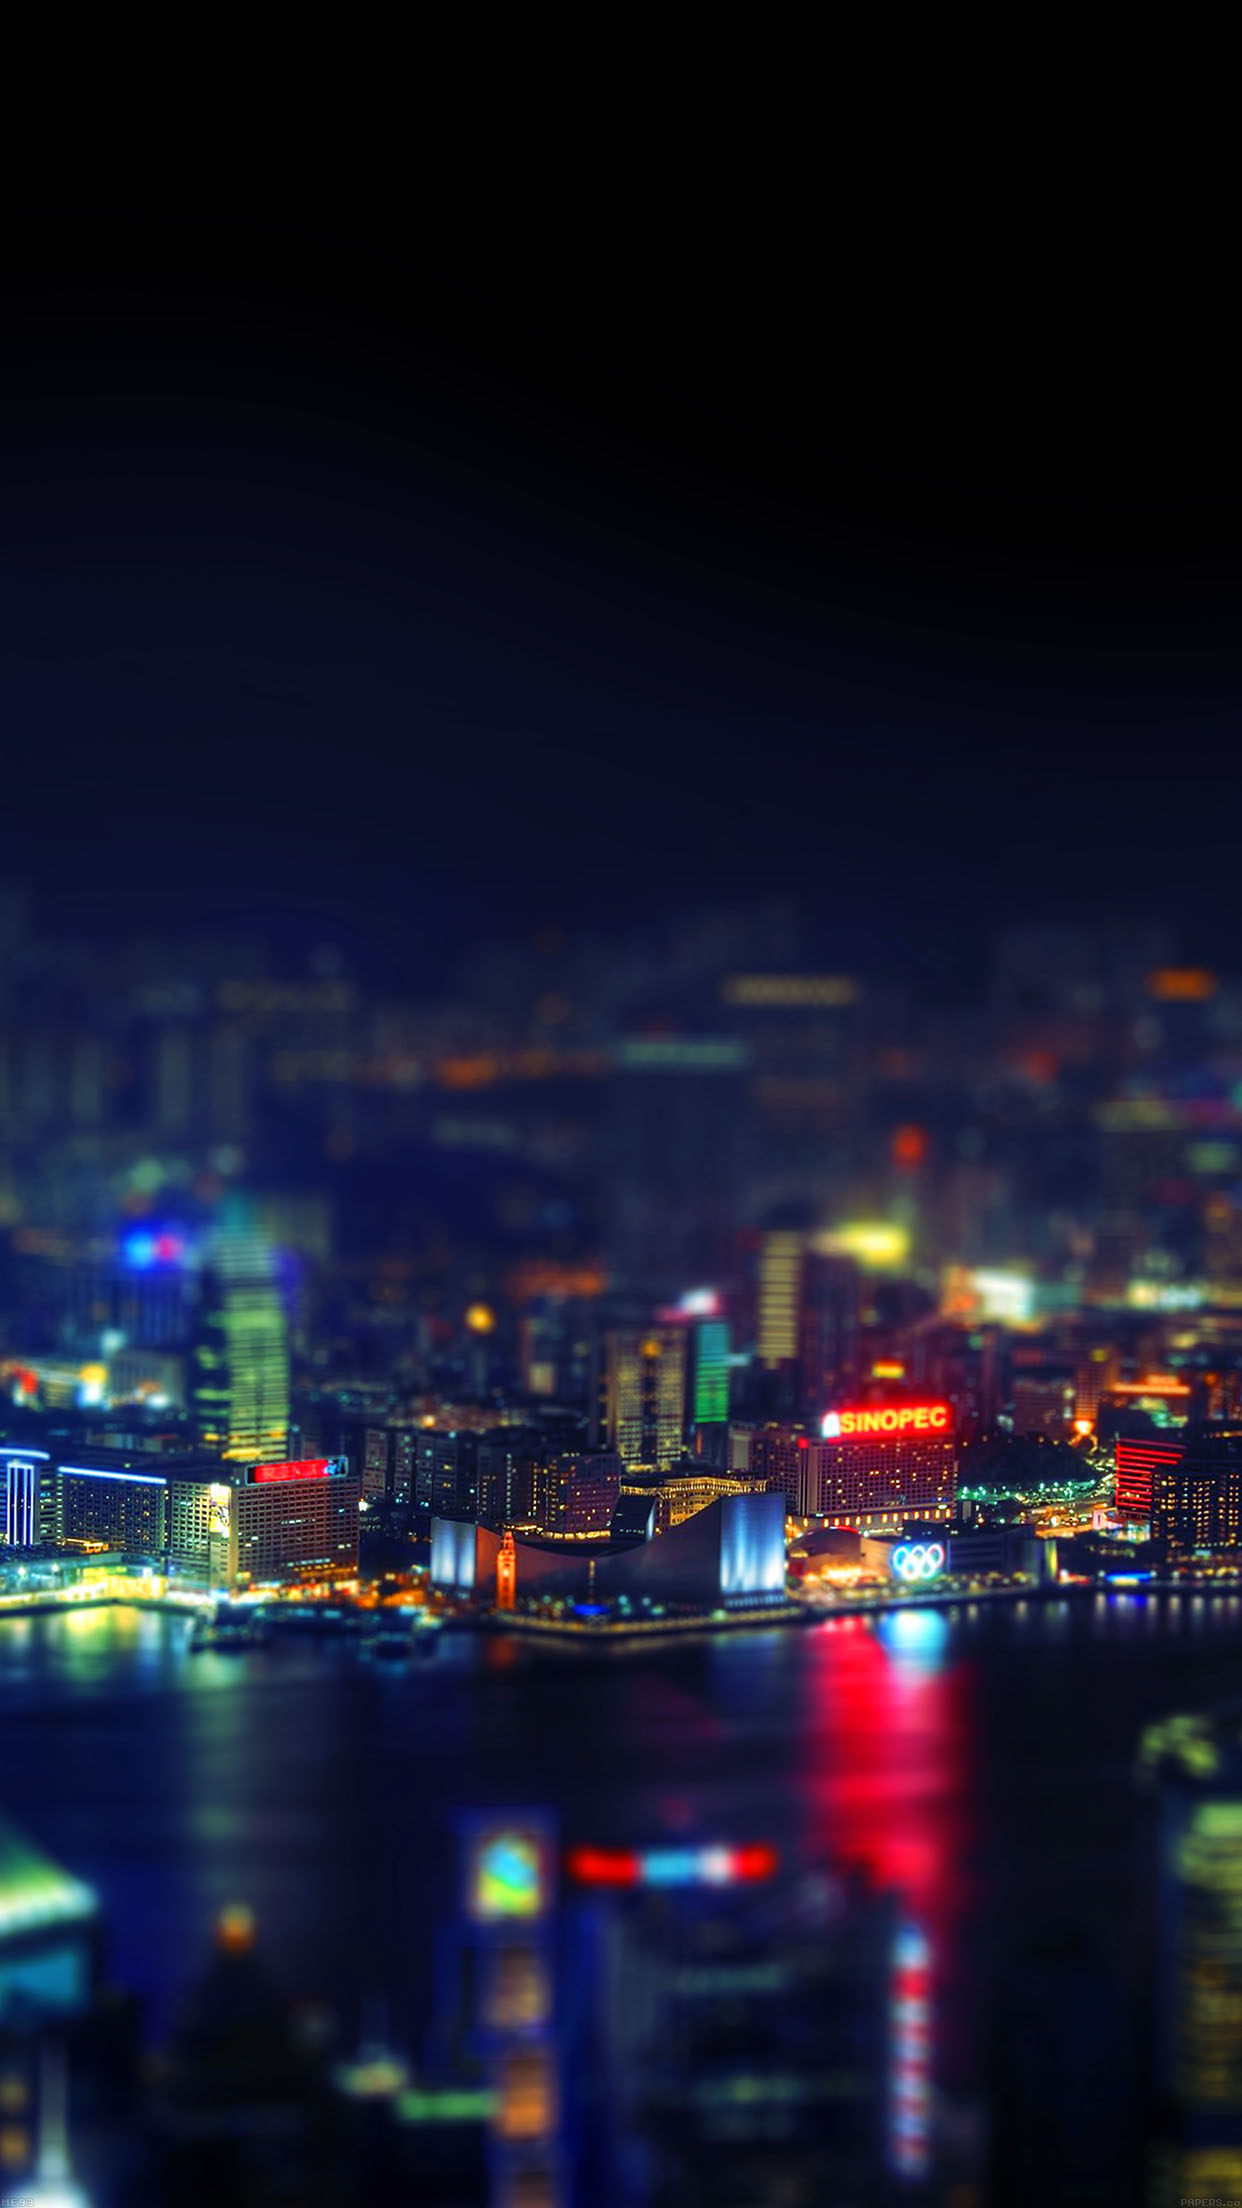 me93-hongkong-night-cityscapes-lights - Papers.co